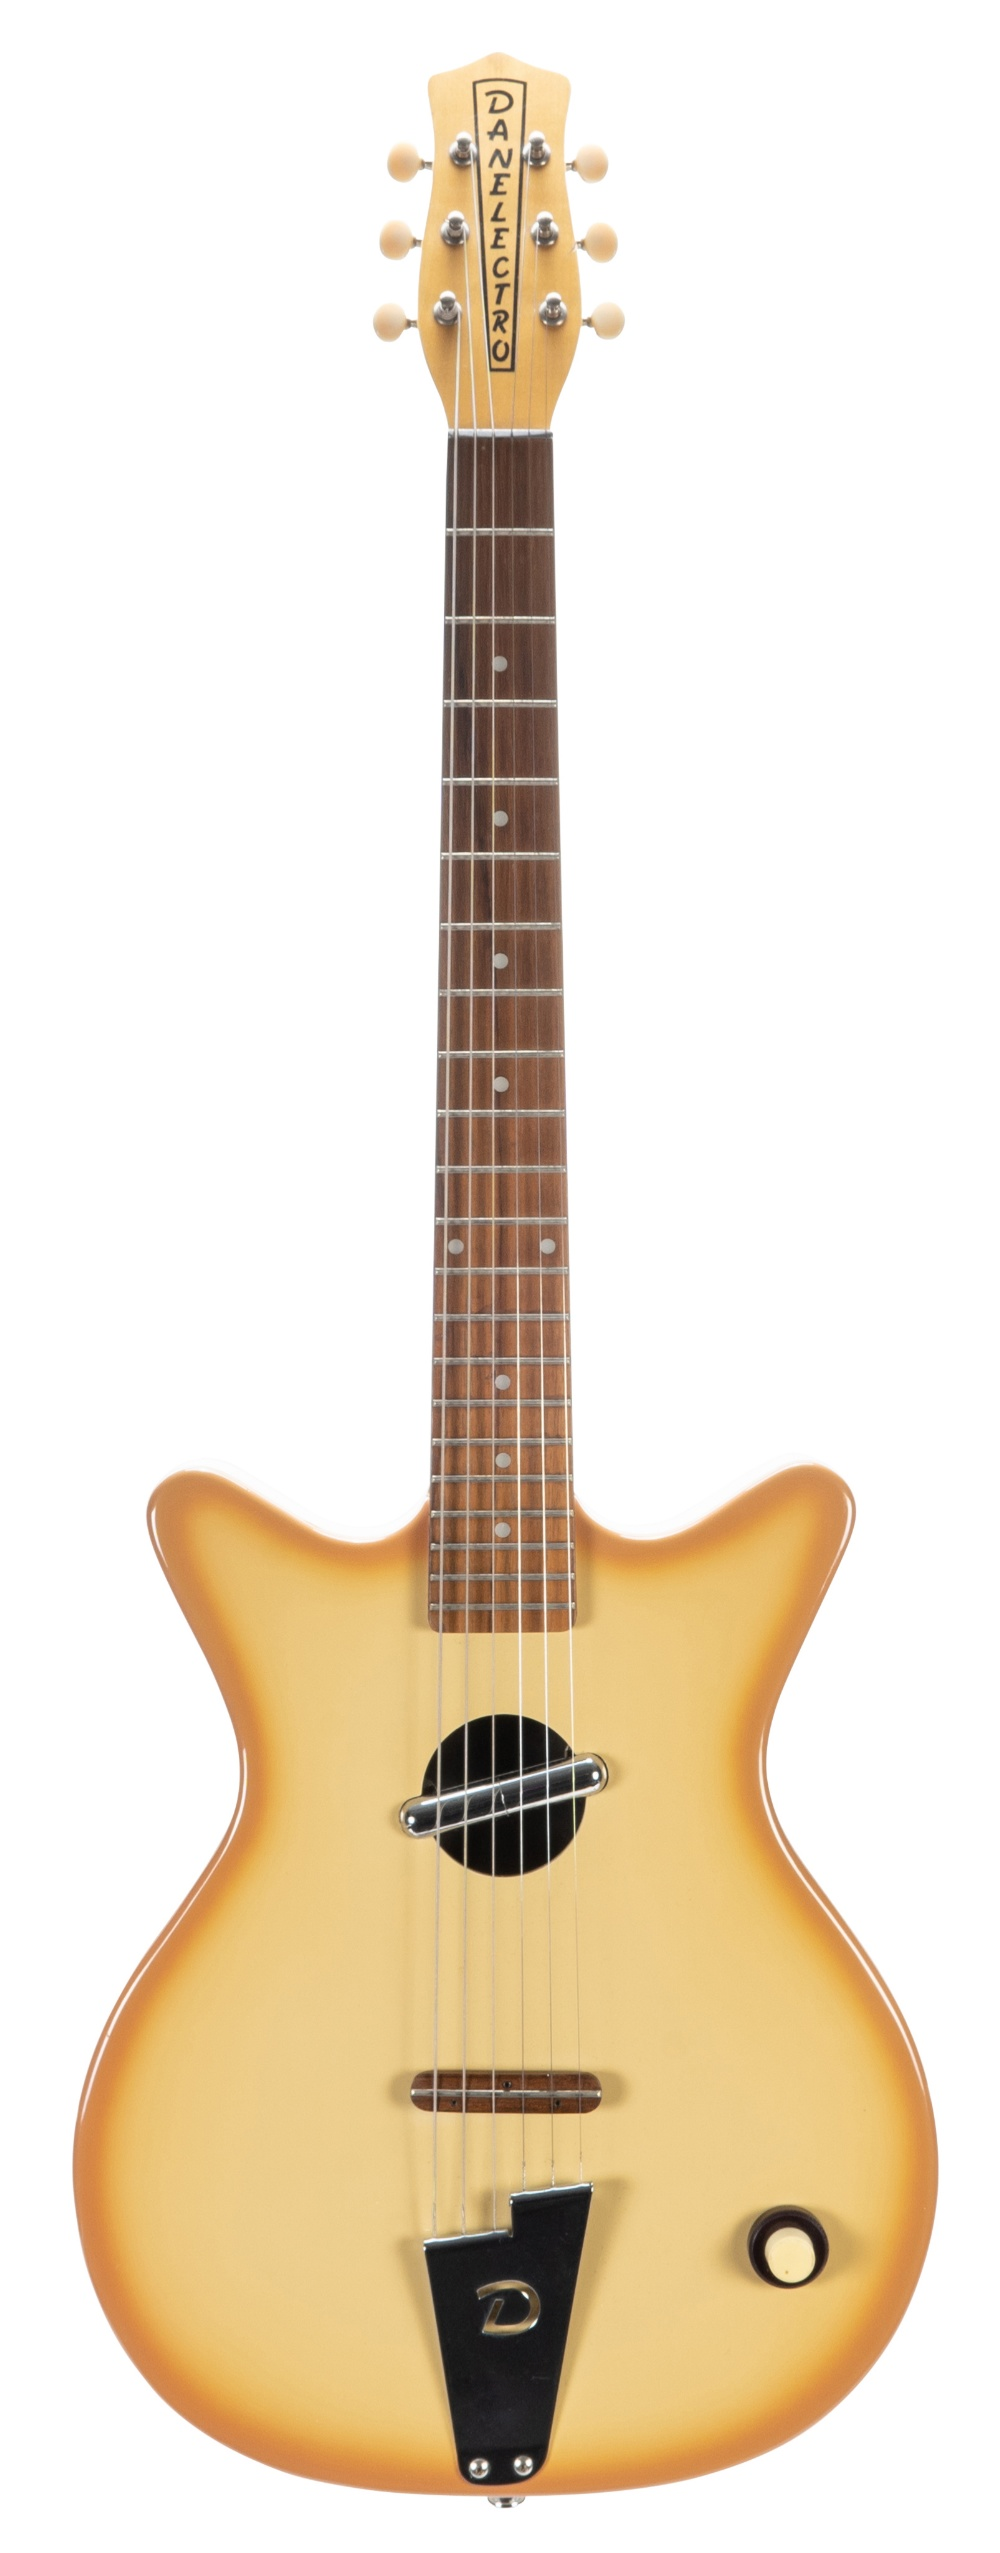 Danelectro Convertible hollow body electric guitar; Finish: coral burst; Fretboard: rosewood; Frets: